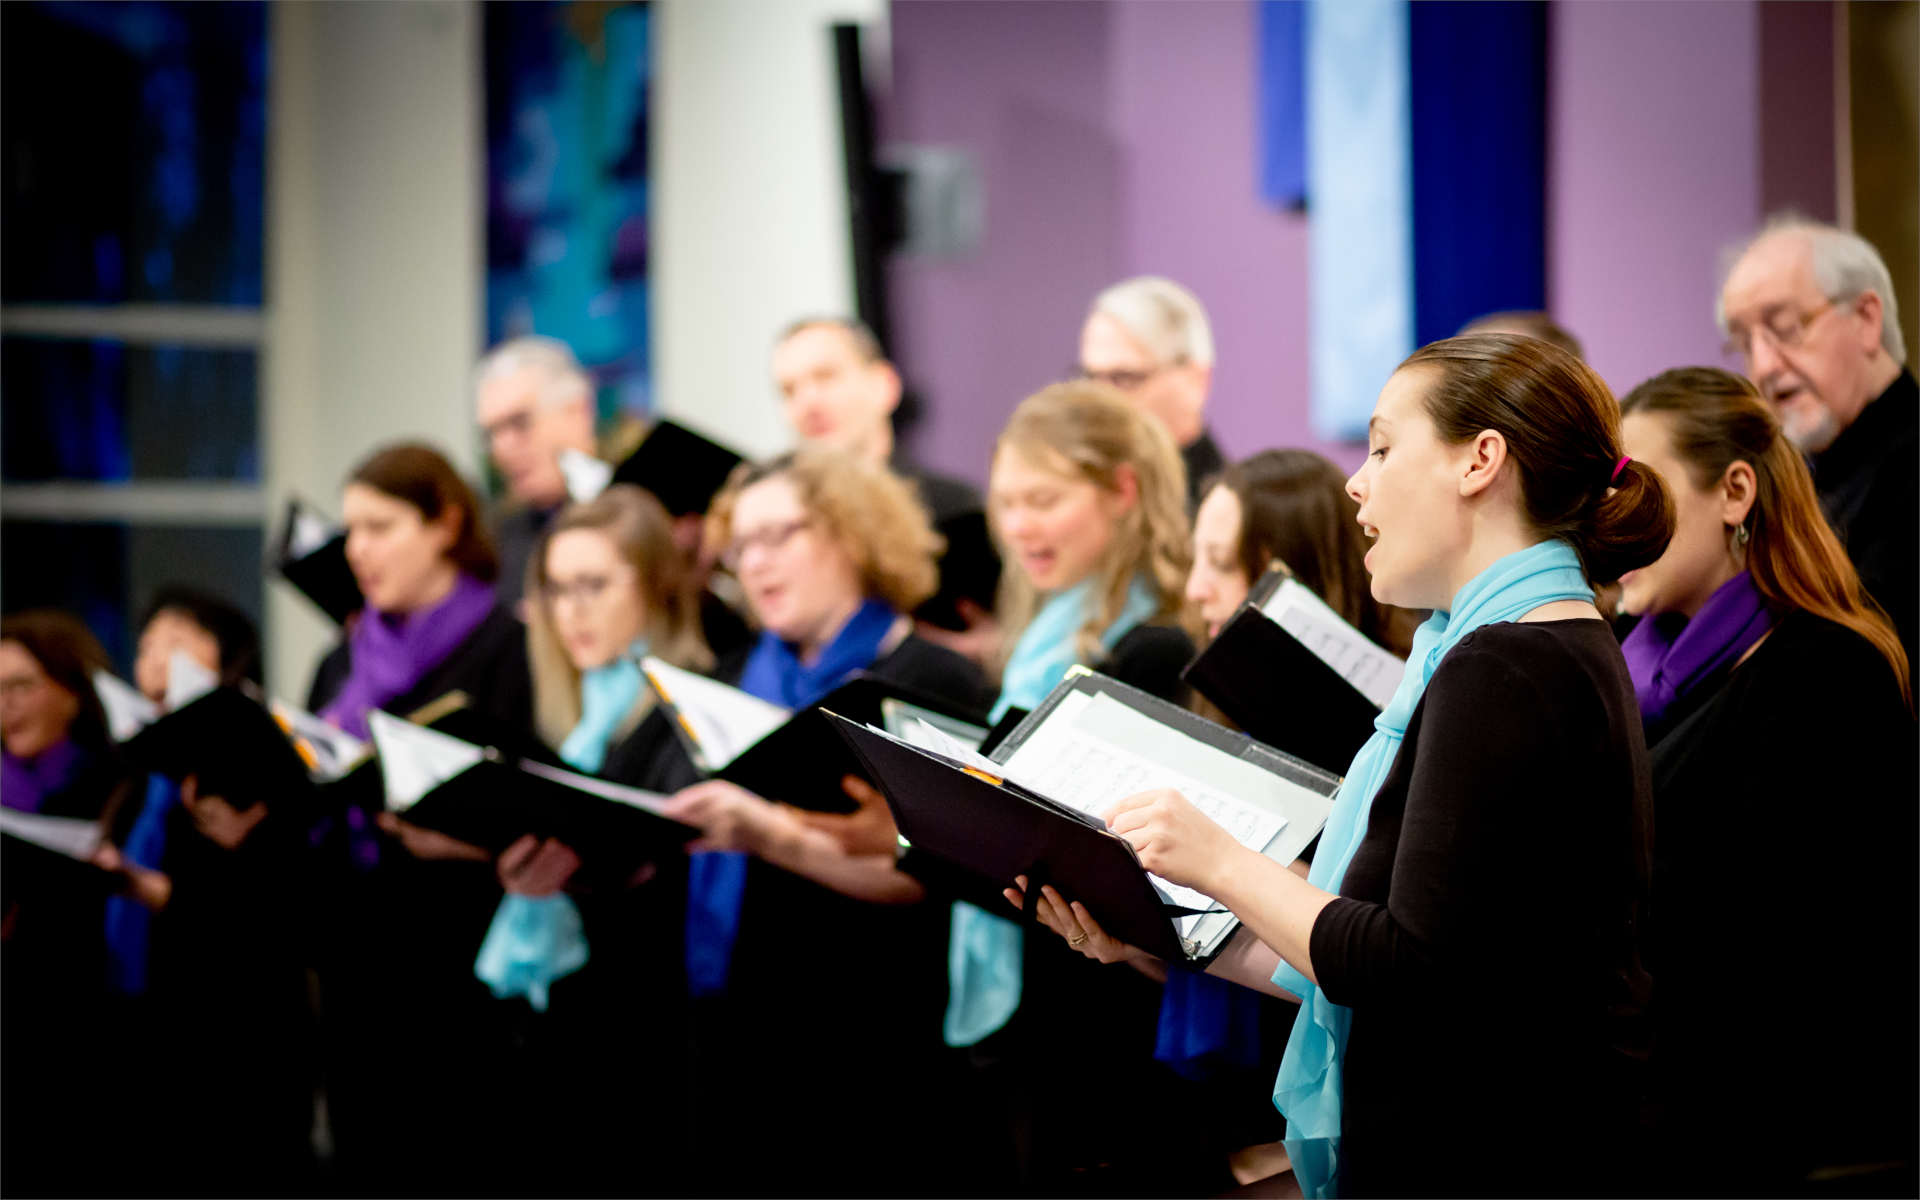 Chorists singing in concert